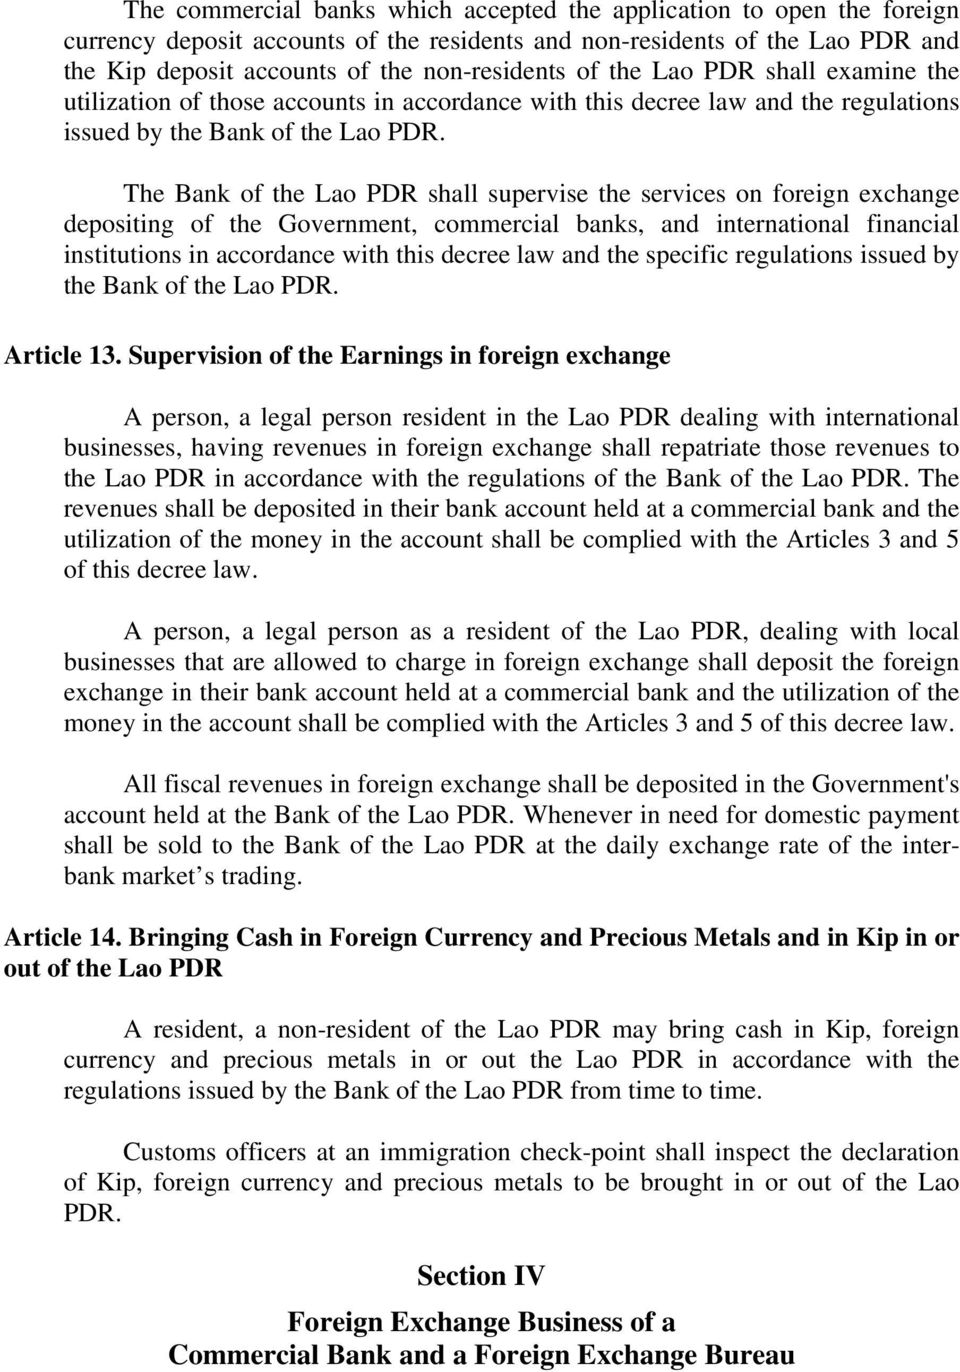 The Bank of the Lao PDR shall supervise the services on foreign exchange depositing of the Government, commercial banks, and international financial institutions in accordance with this decree law